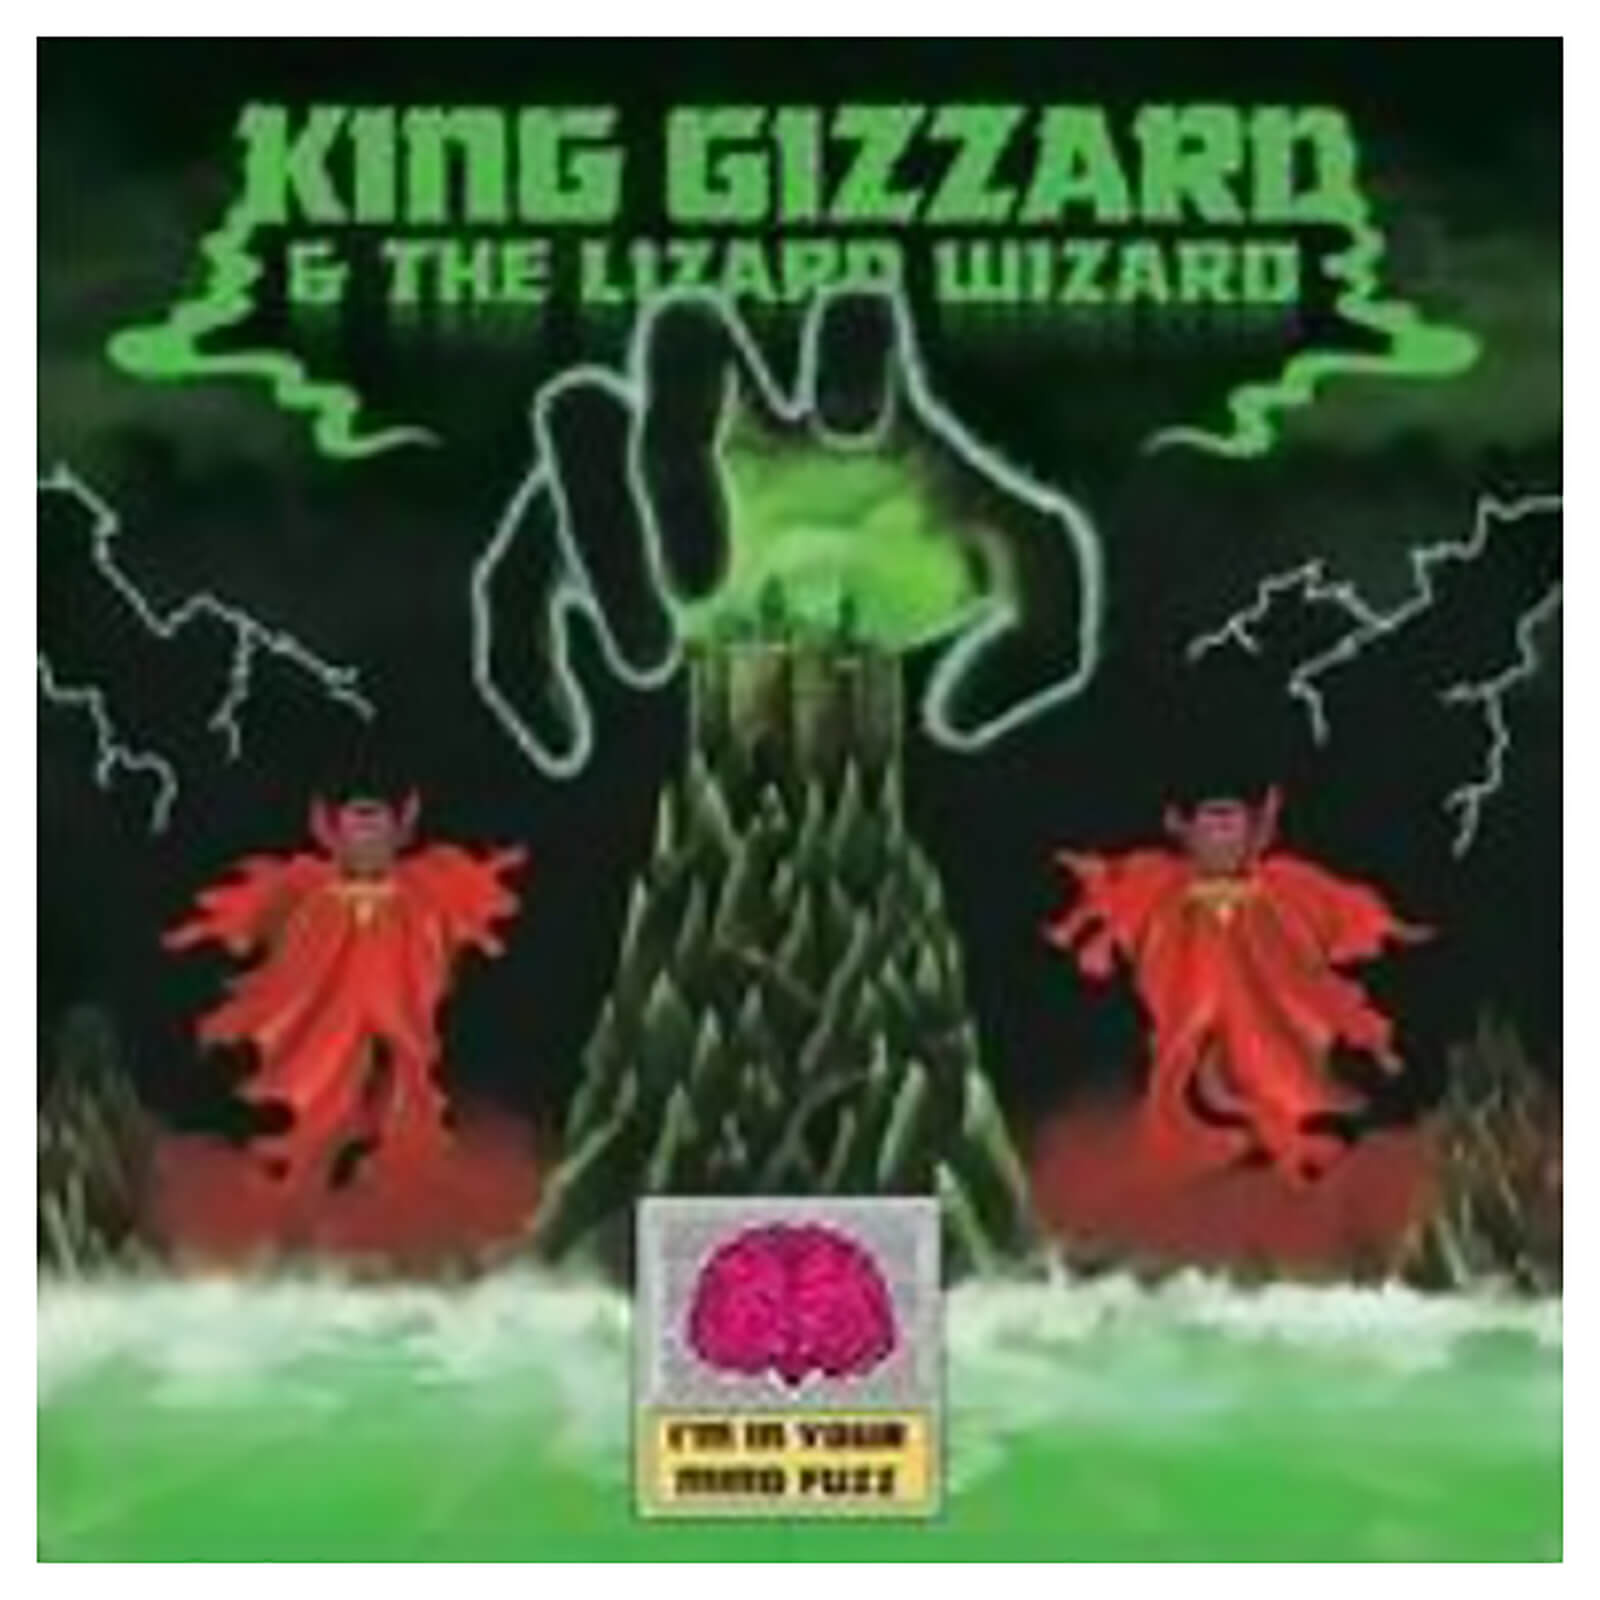 King Gizzard & The Lizard Wizard - Im In Your Mind Fuzz - Vinyl